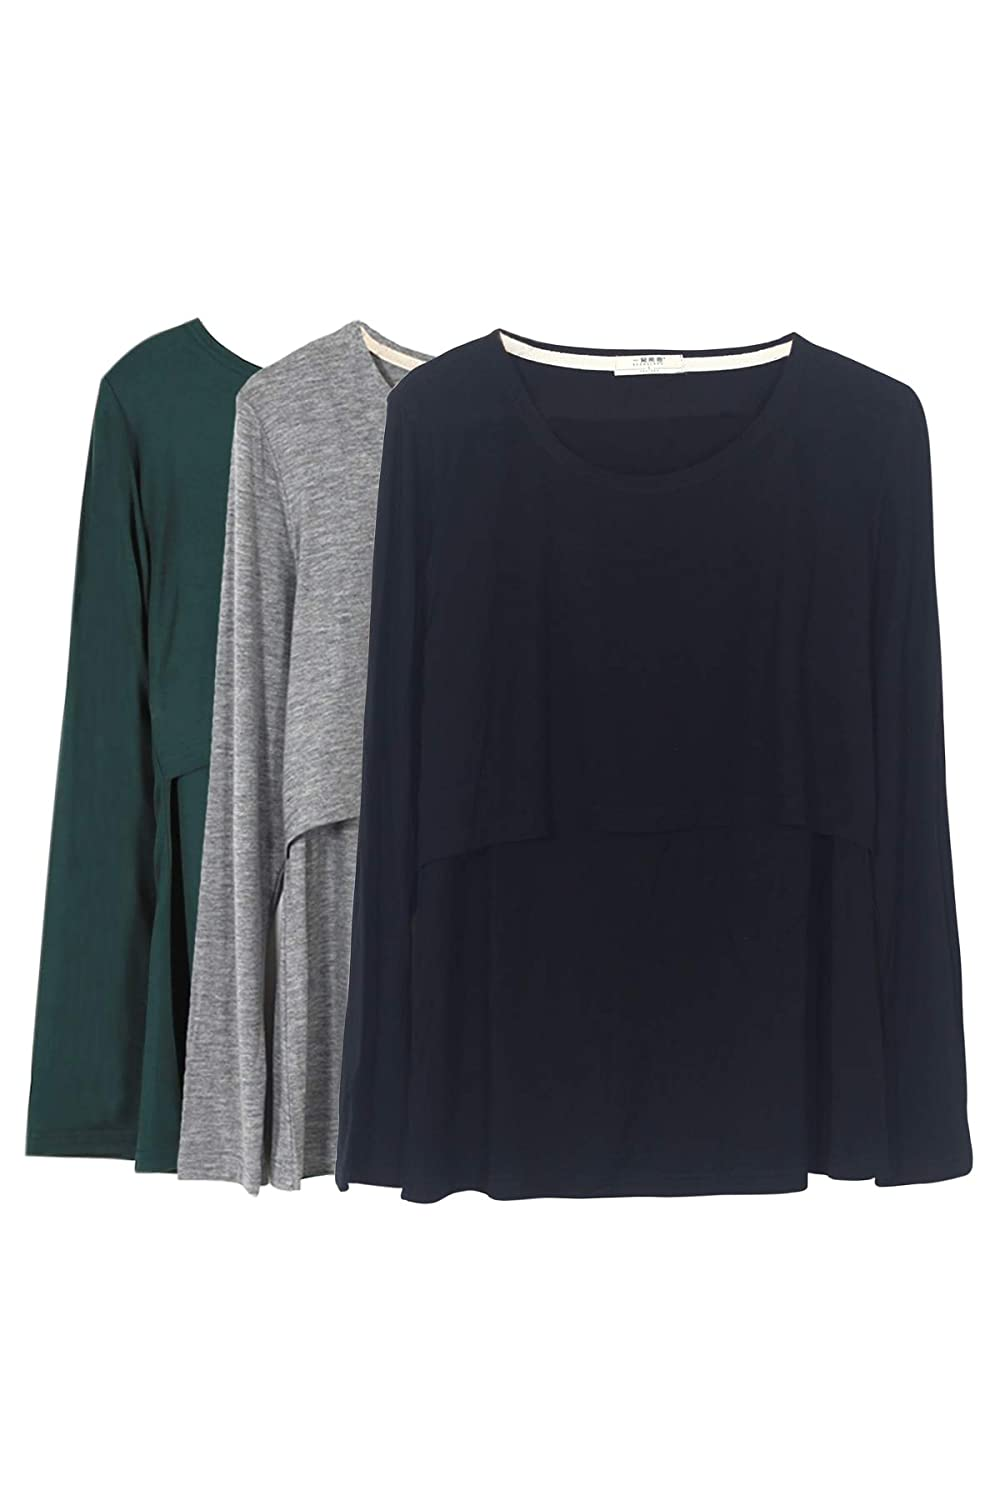 Smallshow SHIRT レディース B0791V93N8 L|Green/Black/Grey Green/Black/Grey L